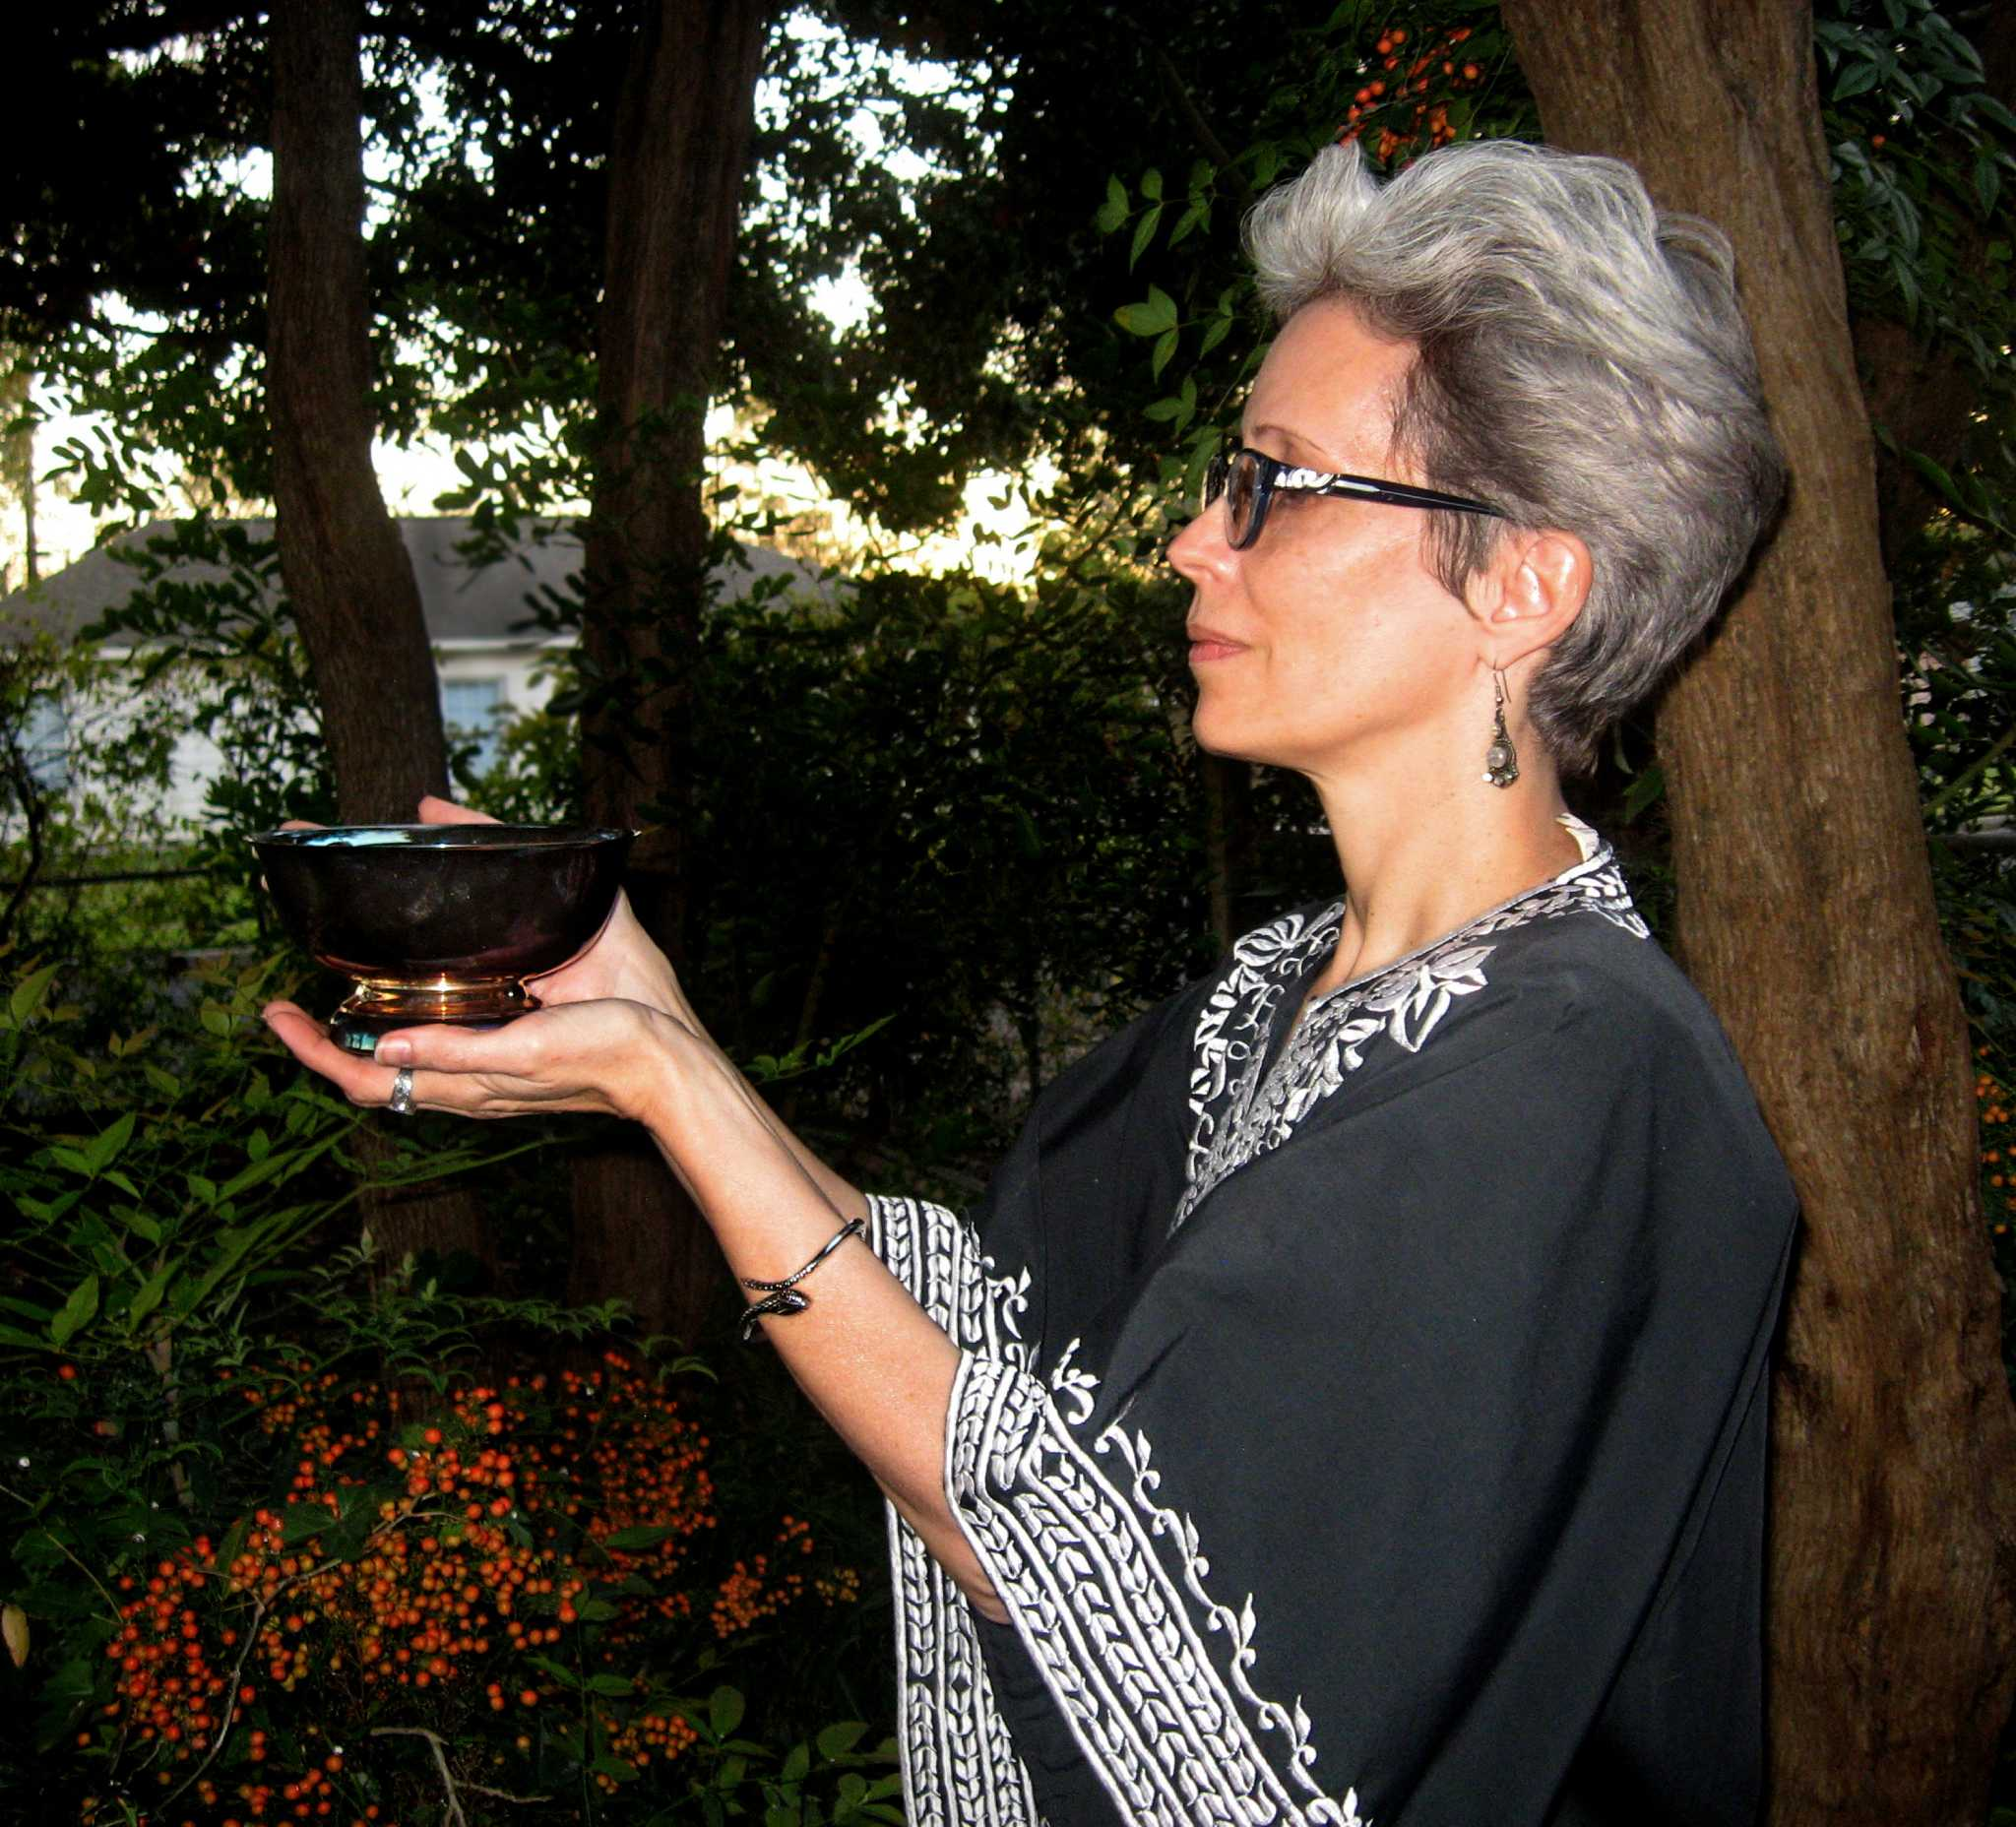 Divine experience leads local woman to Wicca - ExpressNews com